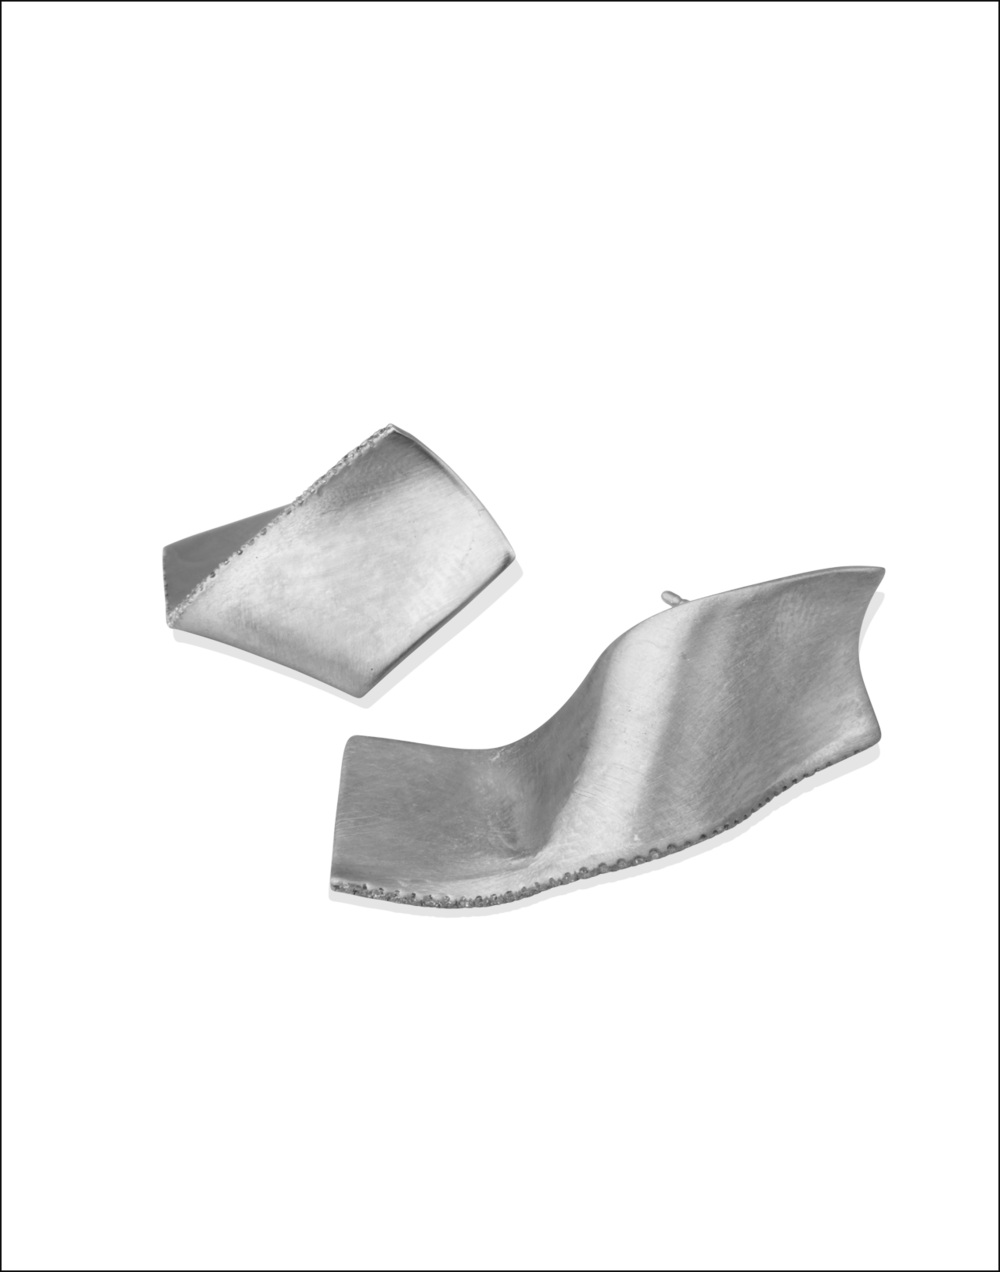 White-Gold-Diamond-Earrings-Memories-of-Water-Completedworks-Fine-Jewellery-4-1.png